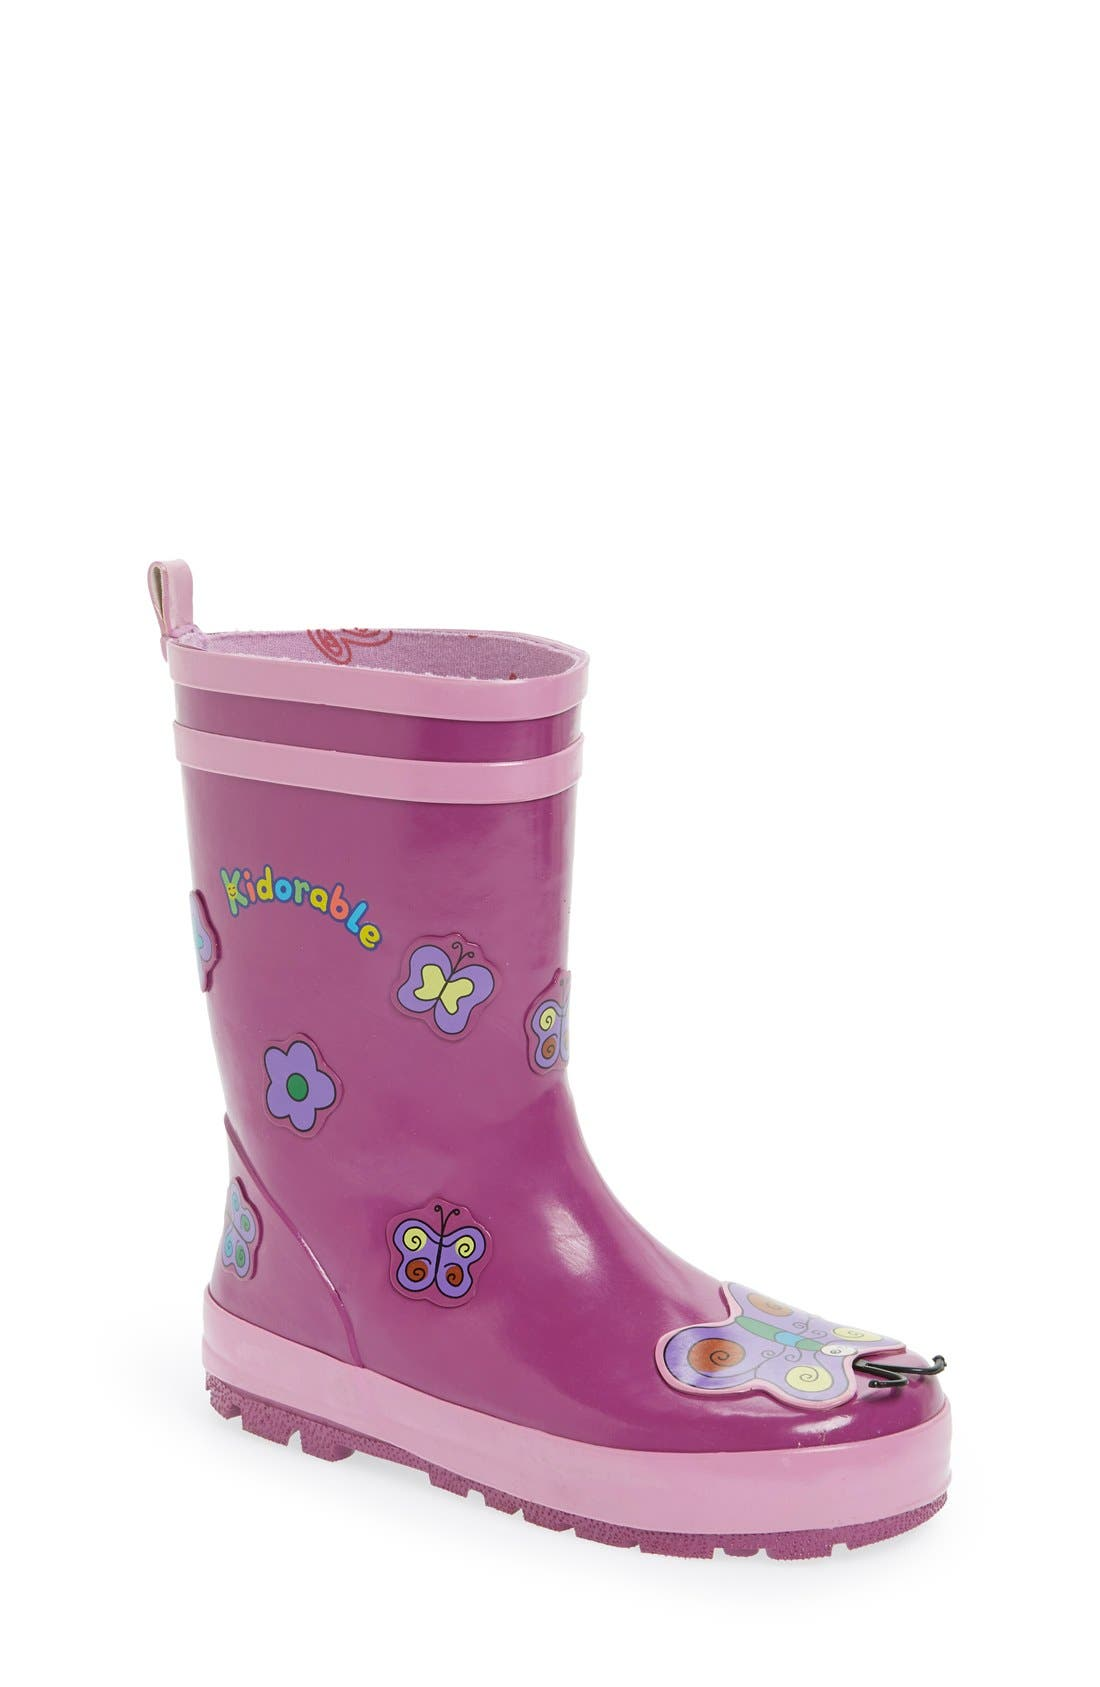 'Butterfly' Waterproof Rain Boot,                             Main thumbnail 1, color,                             500